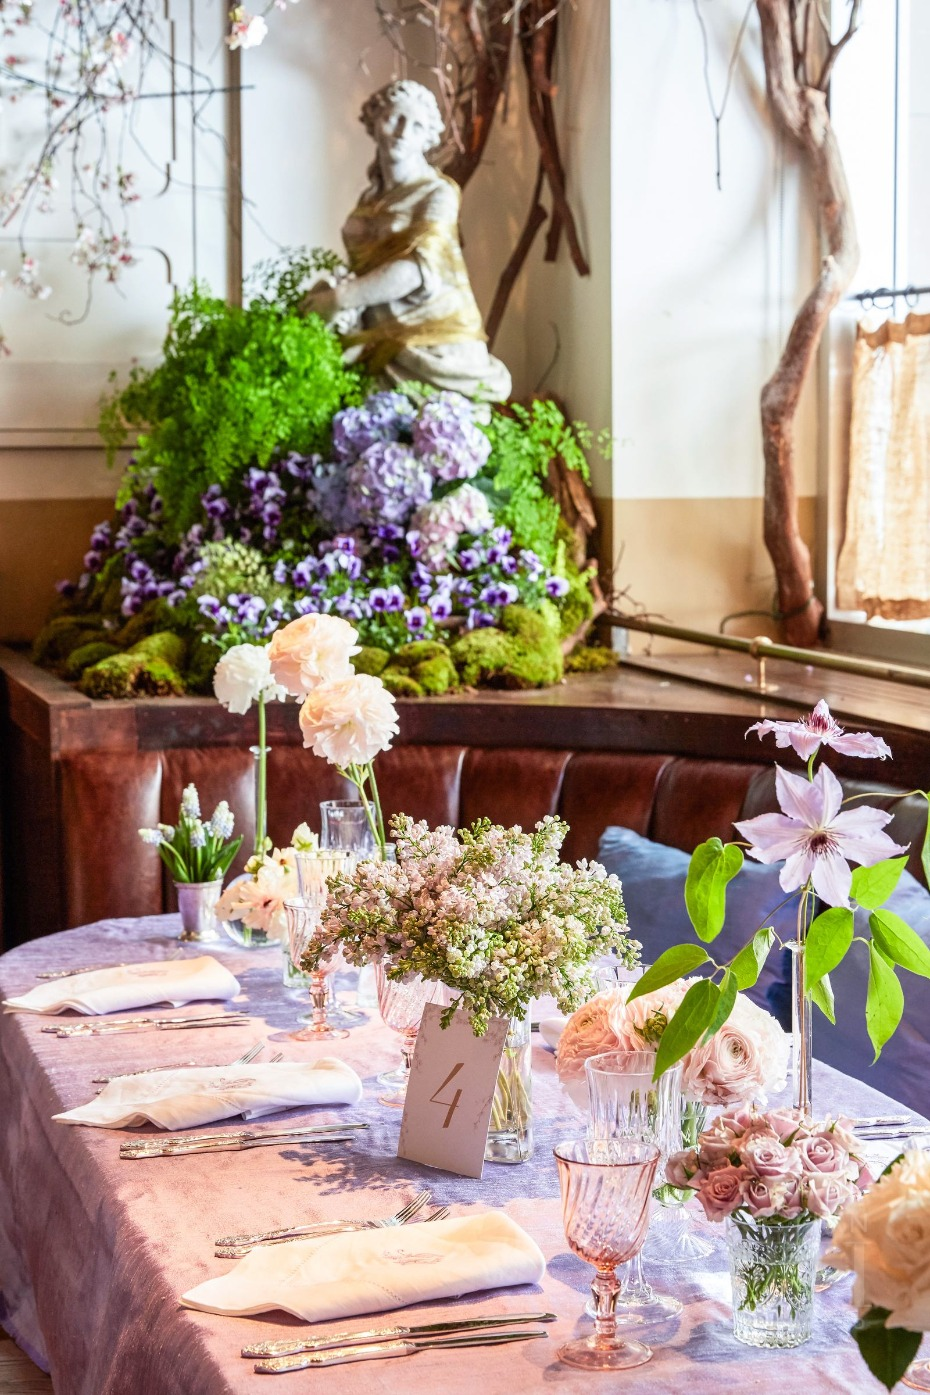 10 Tips For Planning A Bridal Shower